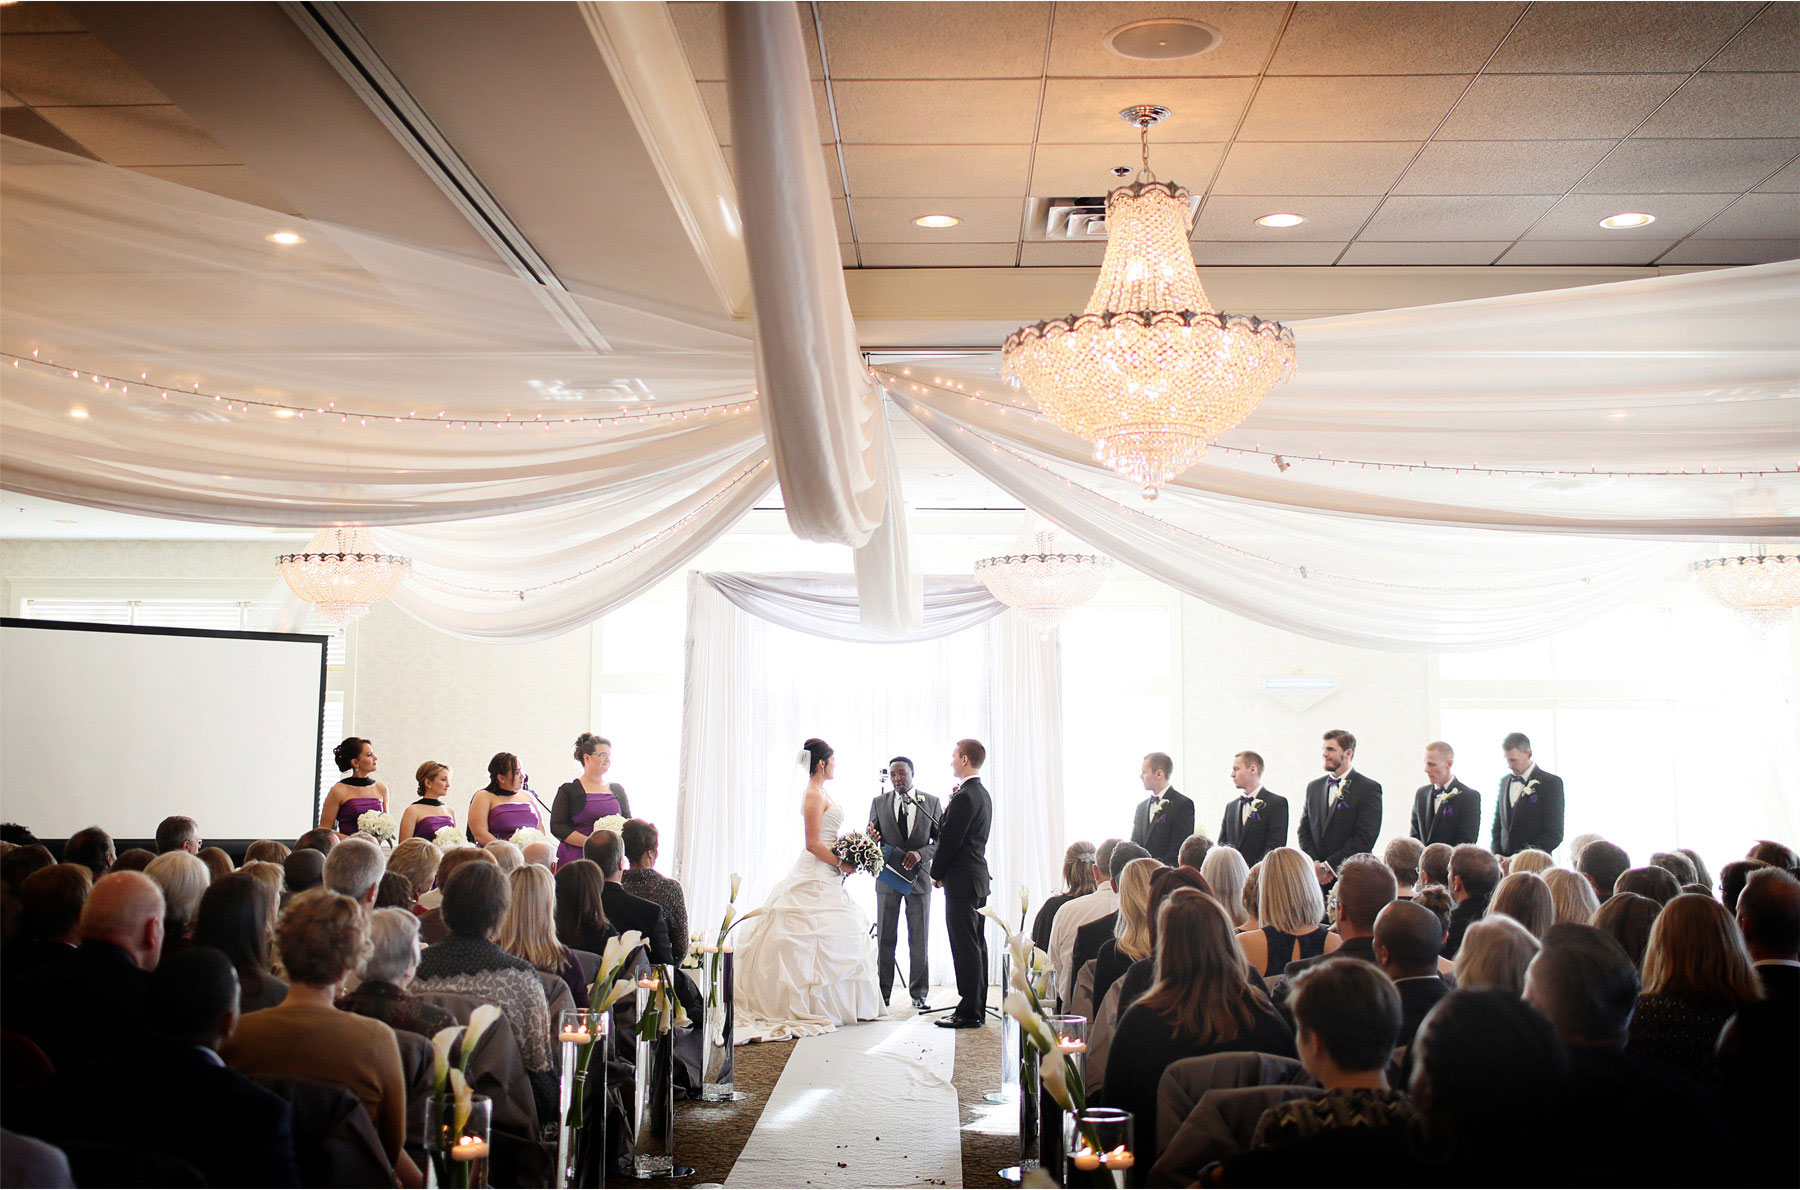 10-Eden-Prairie-Minnesota-Wedding-Photographer-by-Andrew-Vick-Photography-Fall-Autumn-Bearpath-Golf-Country-Club-Ceremony-Bride-Groom-Vows-Brittany-and-Ryan.jpg